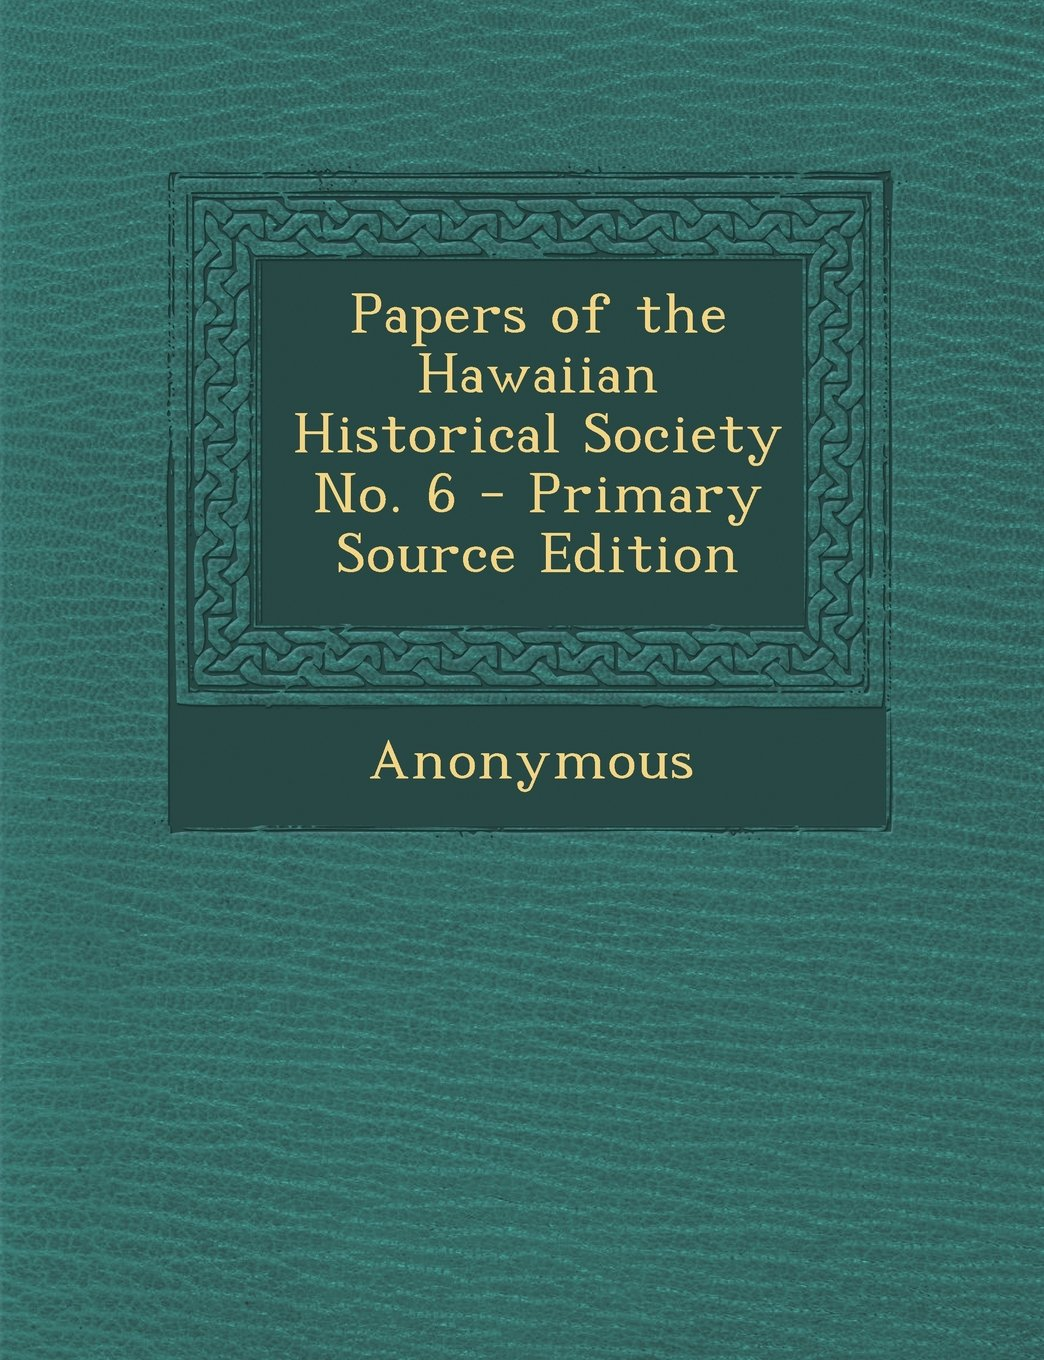 Download Papers of the Hawaiian Historical Society No. 6 - Primary Source Edition pdf